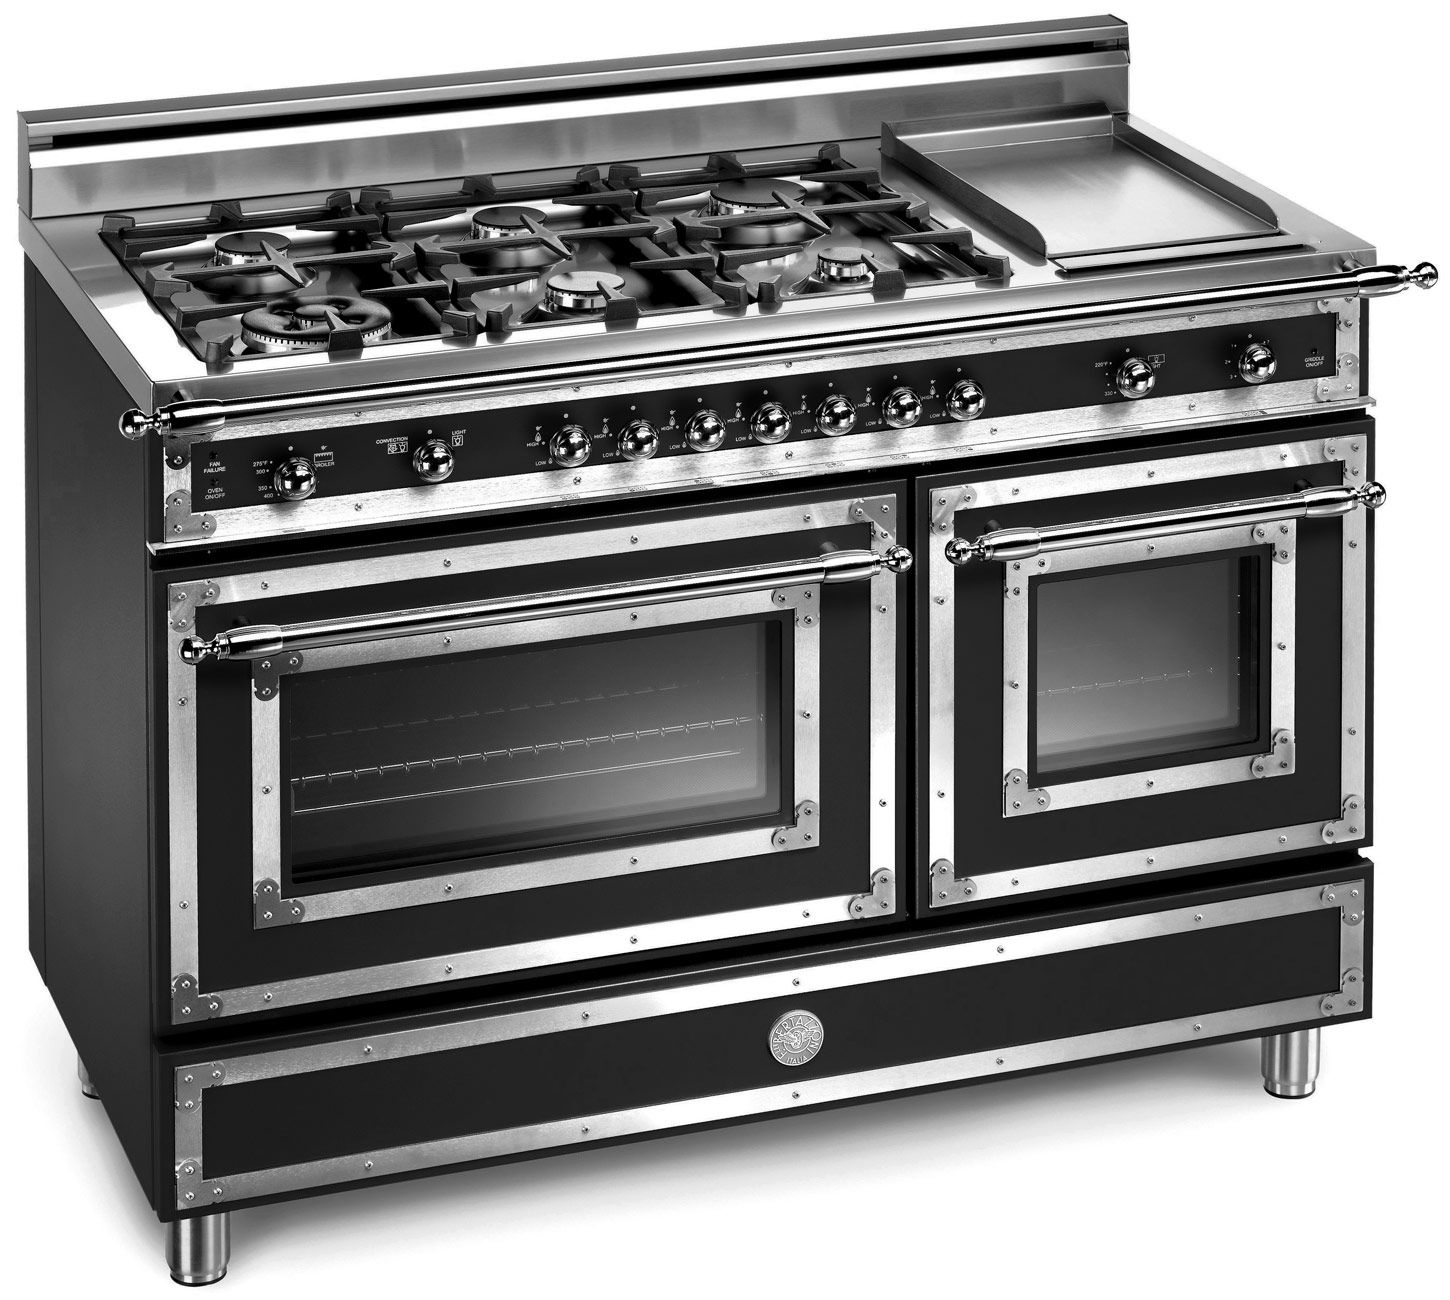 48 6 Burner Gas Range Electric Griddle Bertazzoni Major